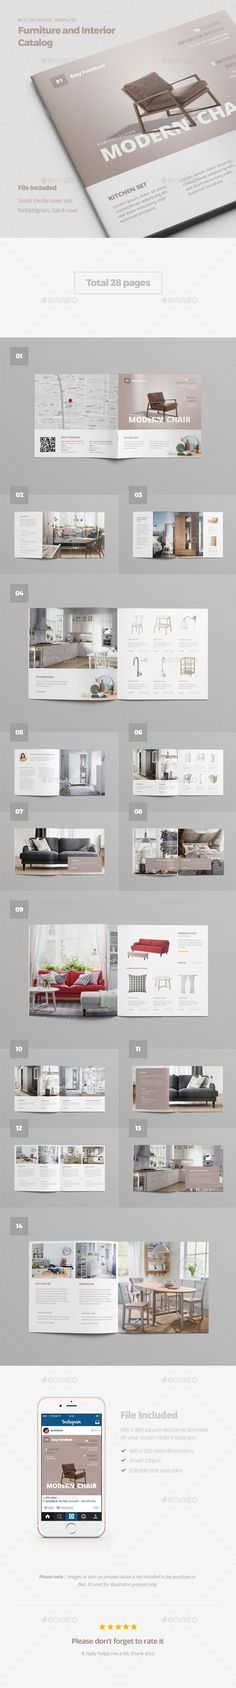 Furniture and Interior Catalog Brochure Template PSD #design Download: http://graphicriver.net/item/furniture-and-interior-catalog/13366214?ref=ksioks